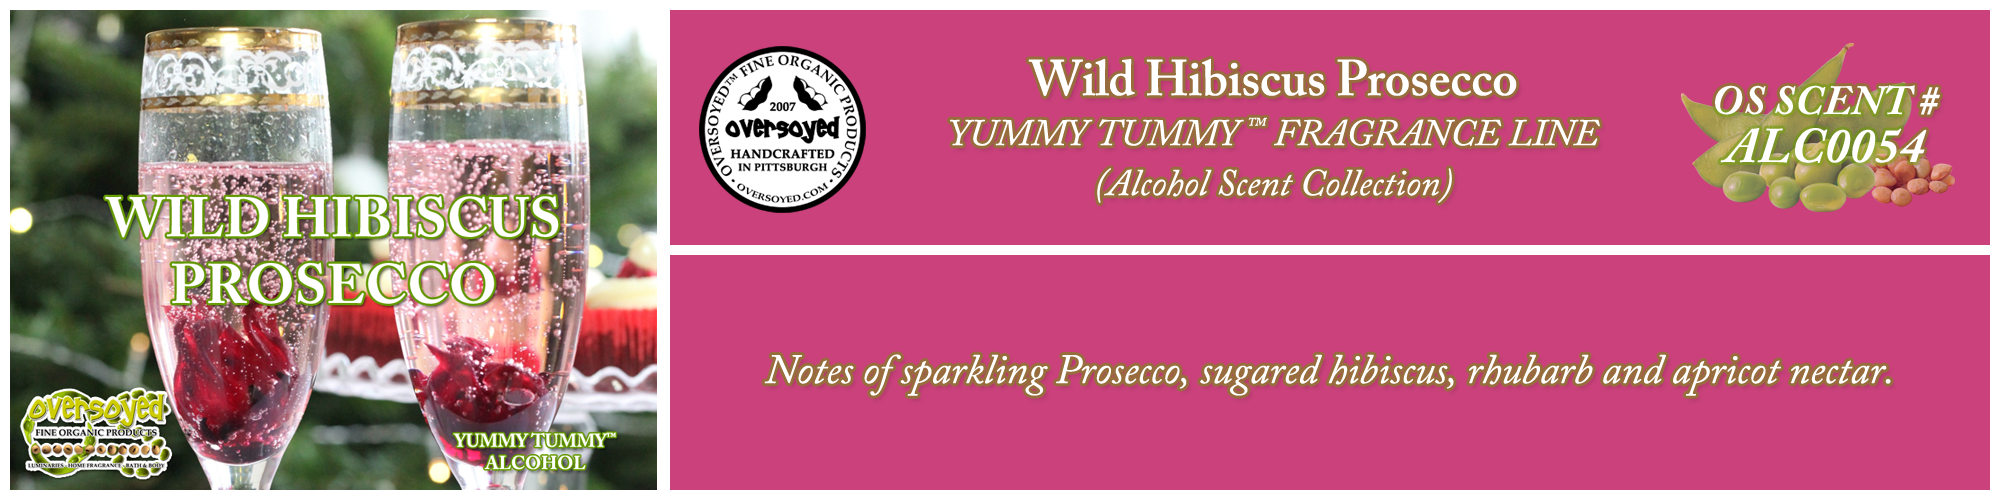 Wild Hibiscus Prosecco Handcrafted Products Collection